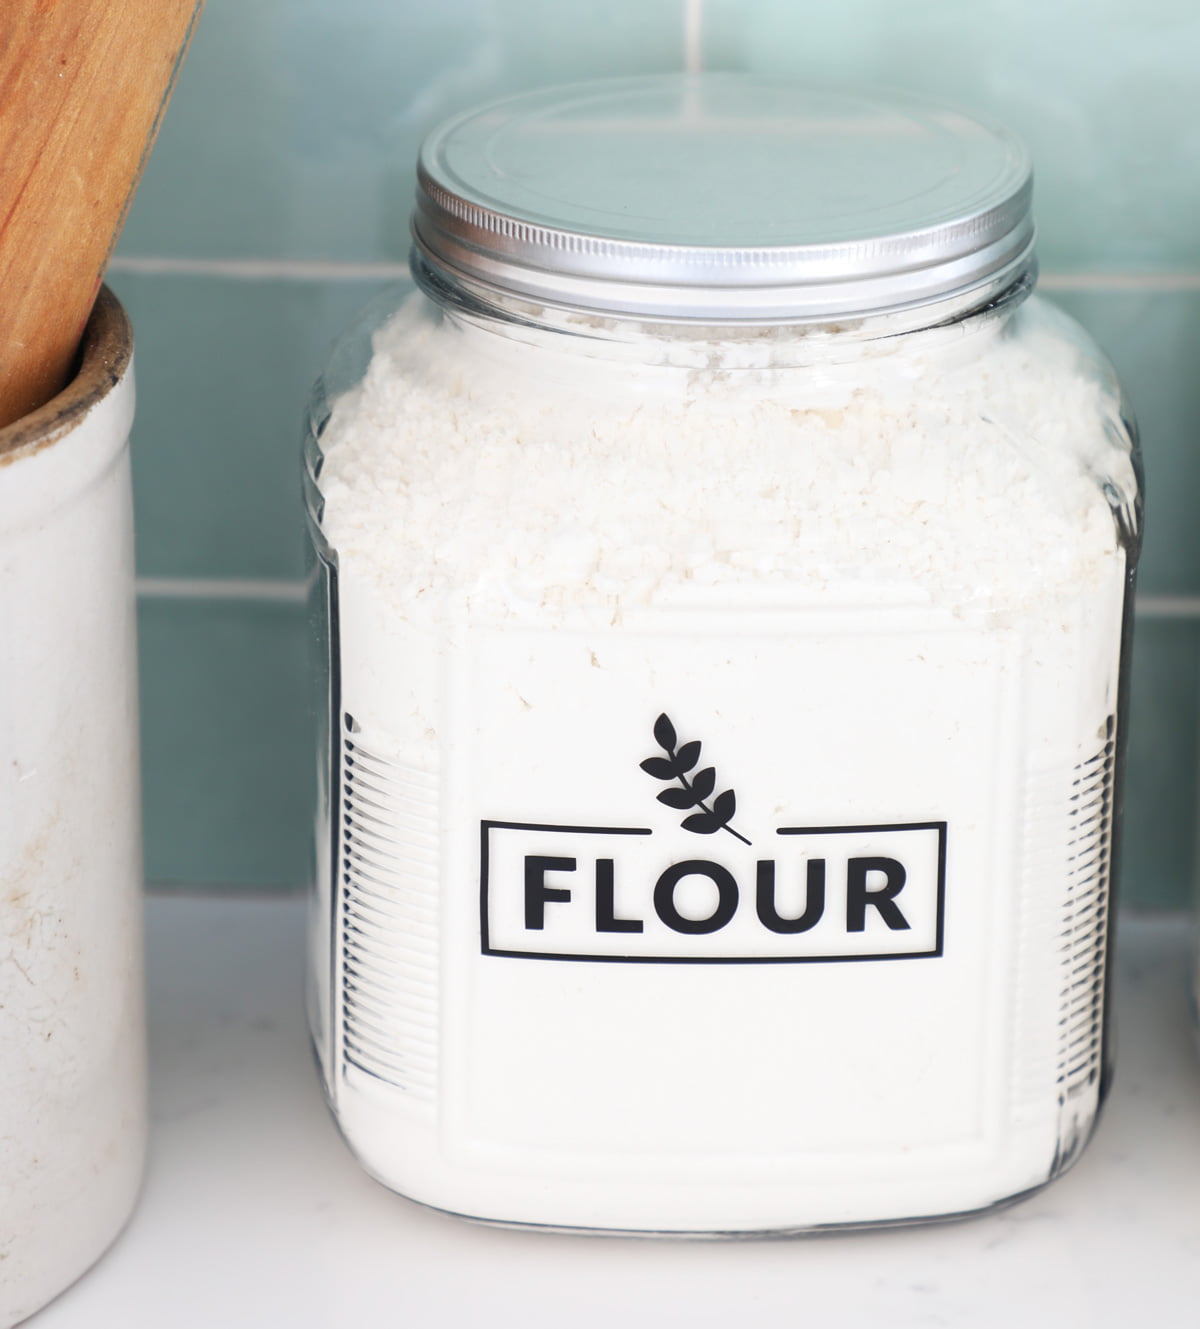 Flour Canister Pantry Label